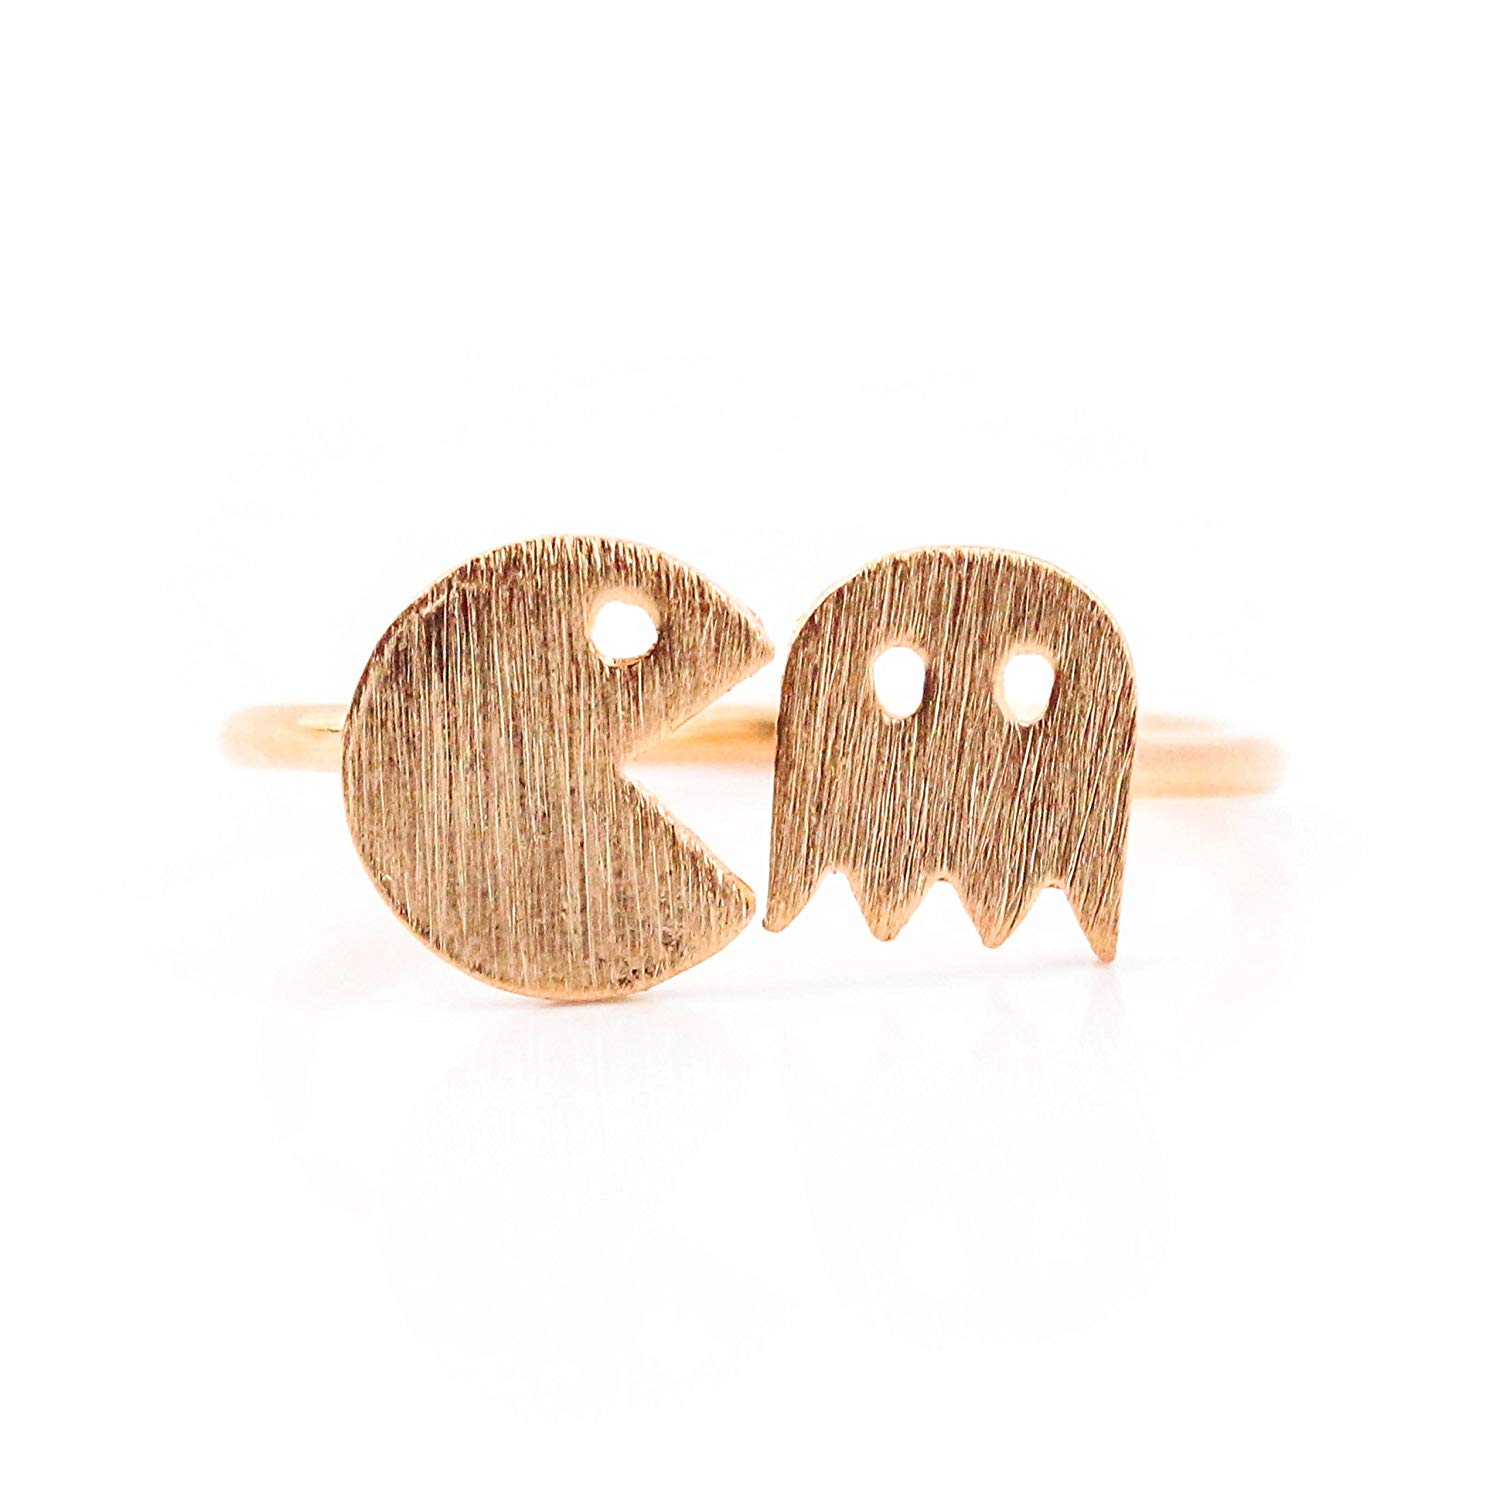 SeaBlue Boutique PAC MAN AND GHOST RING, Rose Gold Plated Alloy Ring, Rose Gold Ring Adjustable for Women Ring Size 6-7 Designer Ring